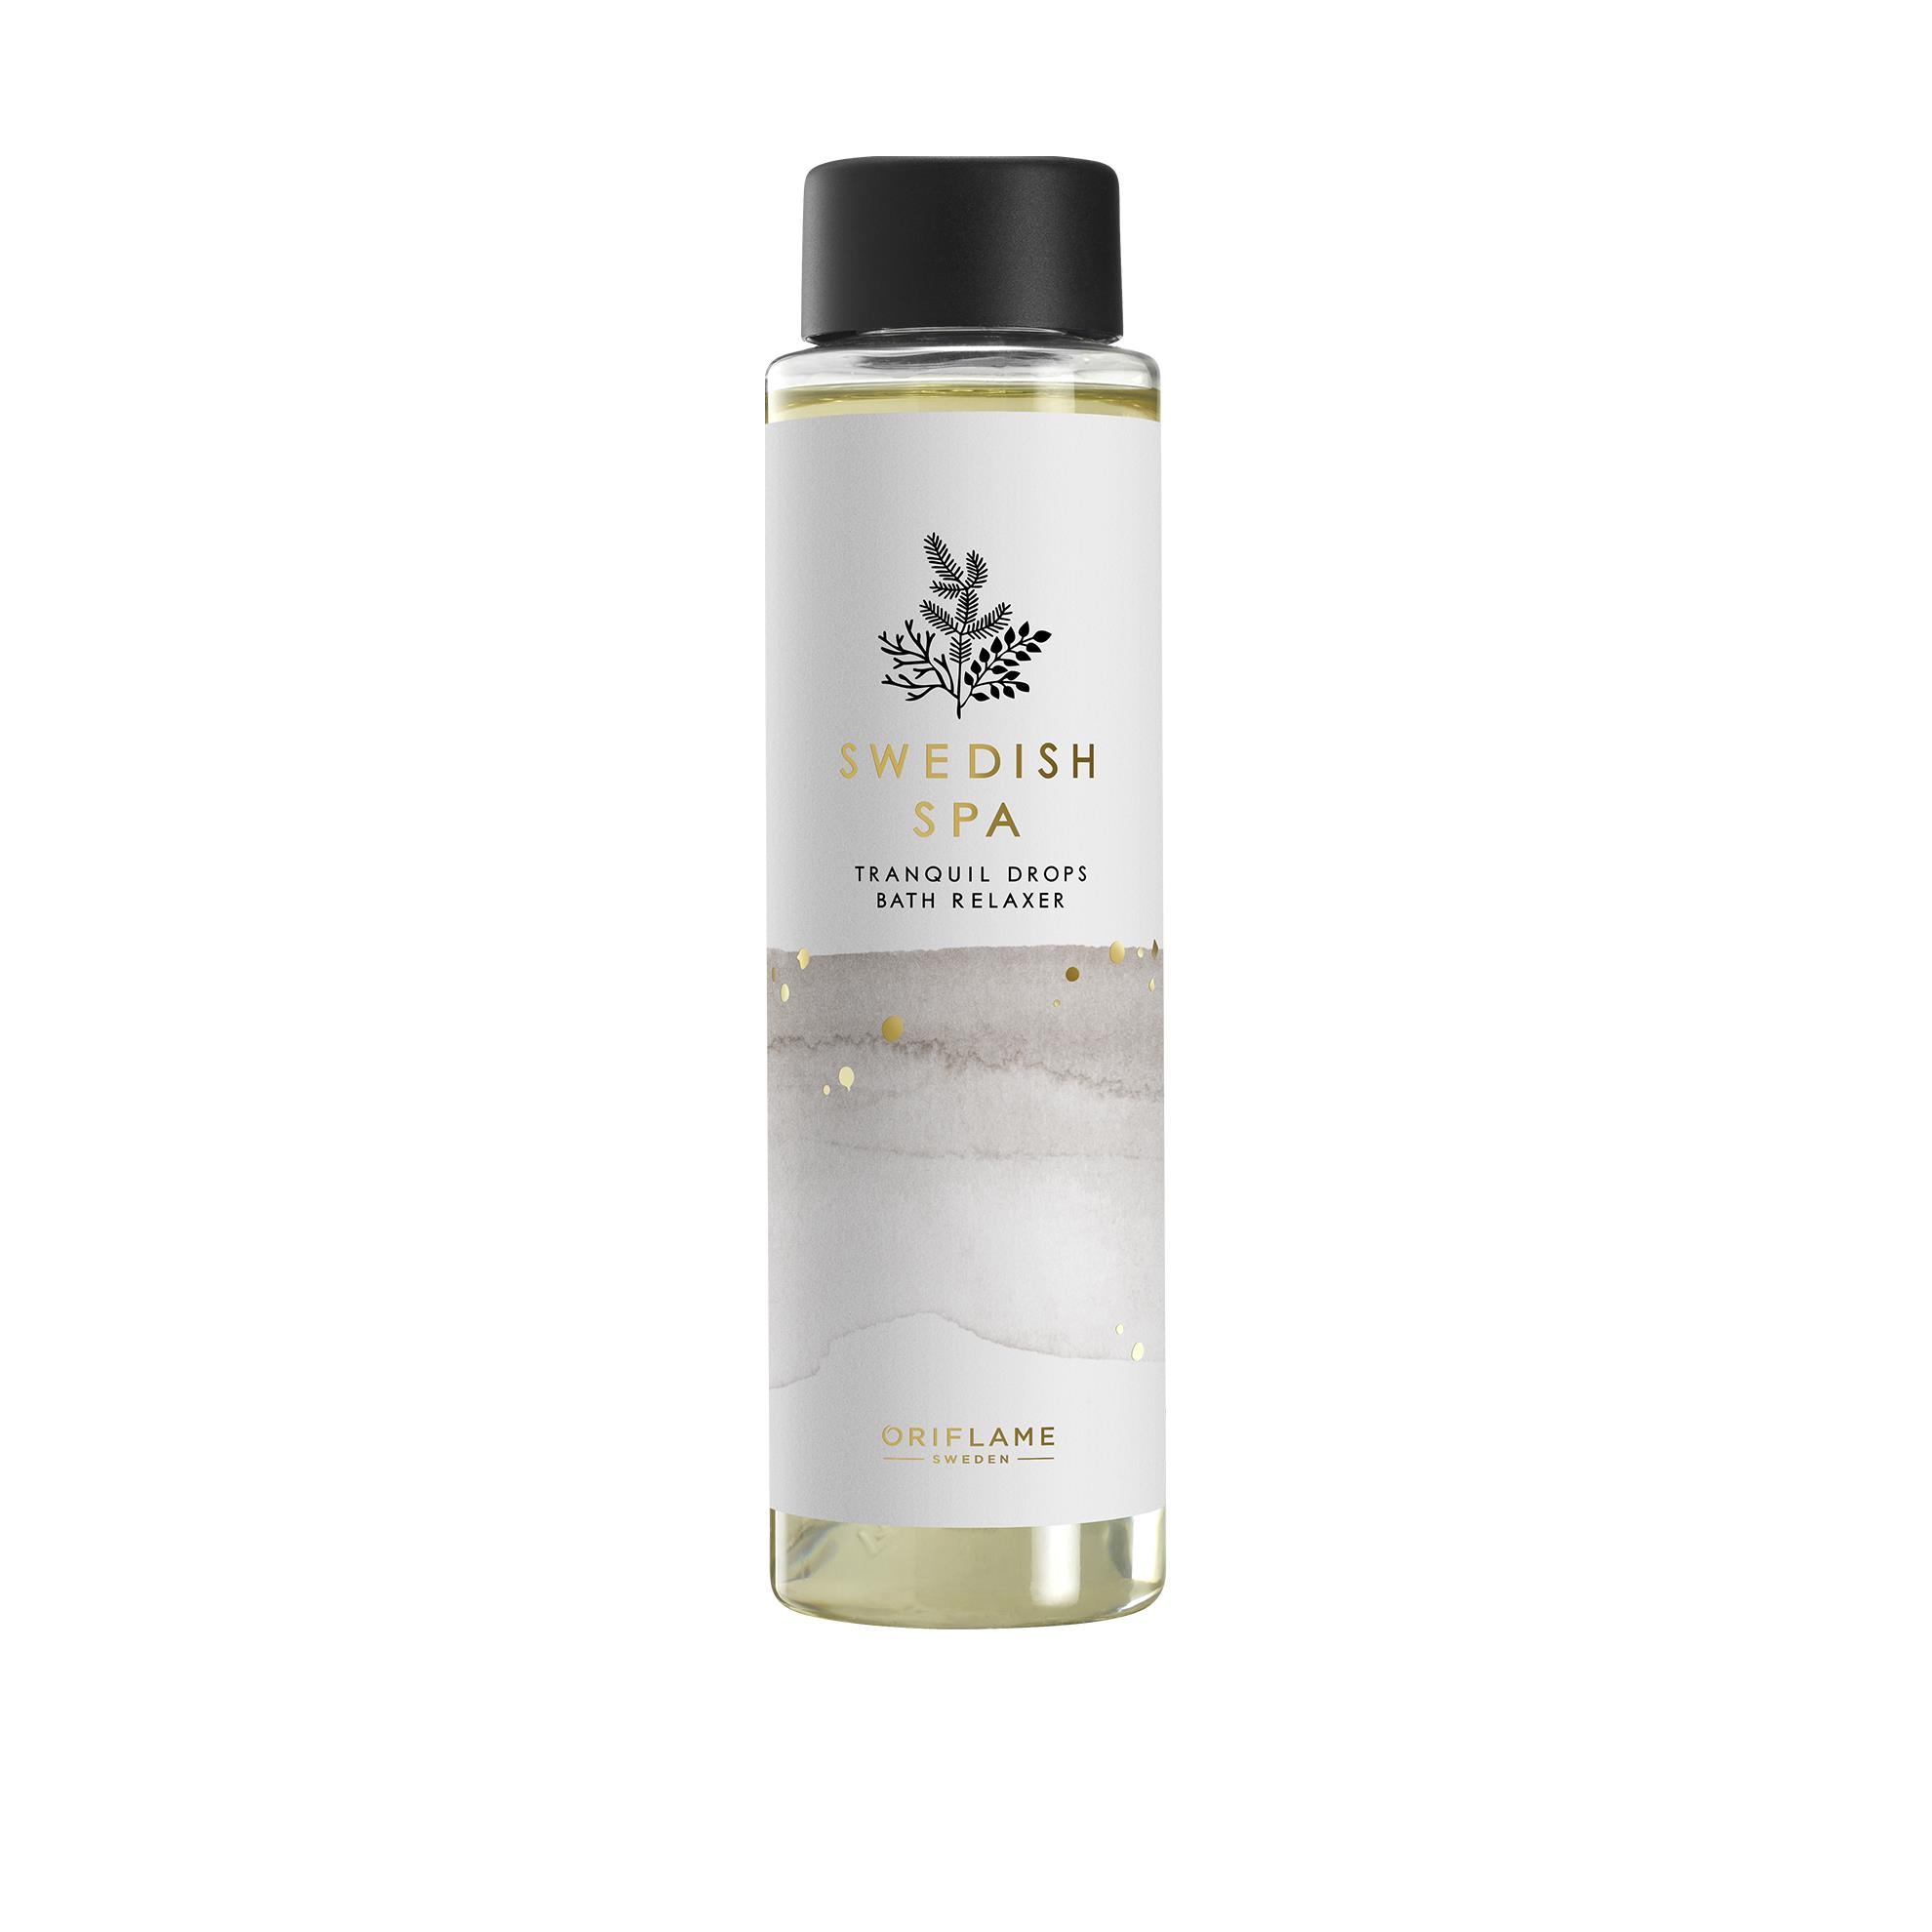 Relaksujący olejek do kąpieli Swedish Spa Tranquil Drops